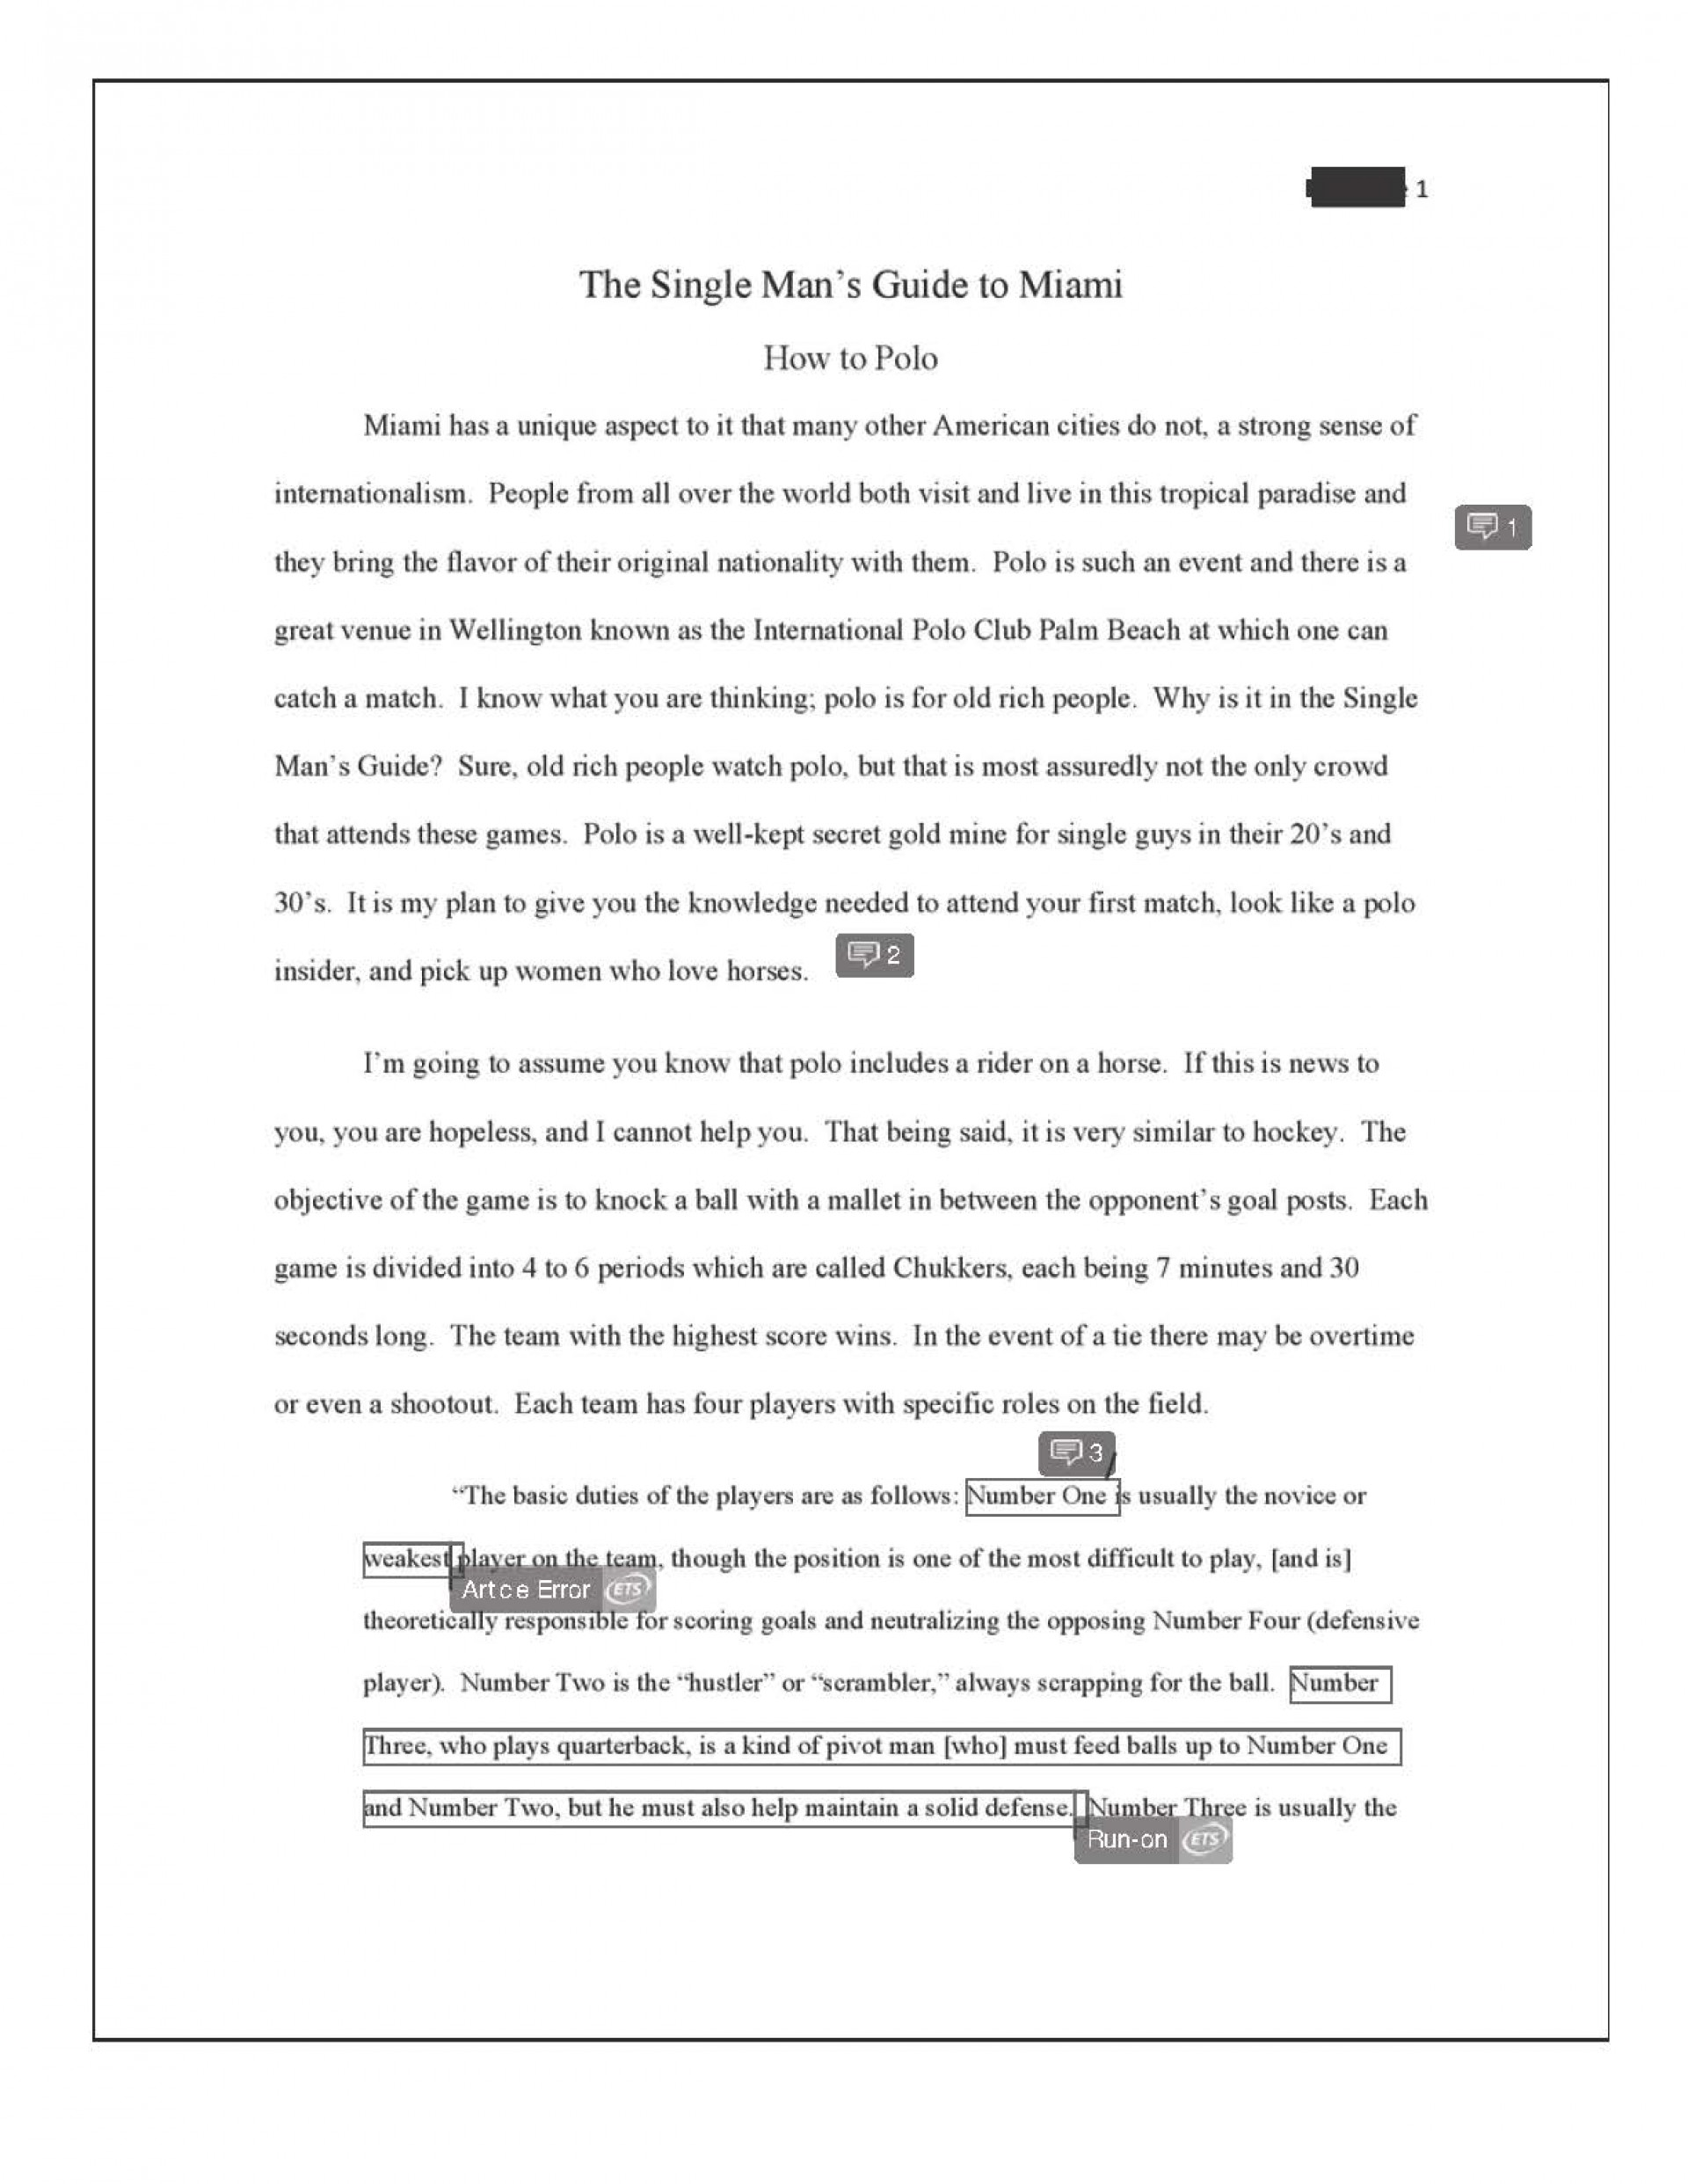 005 Informative Essay Topics Essays Sample Funny Argumentative For Middle School Final How To Polo Redacted P College Students Hilarious Good Remarkable 2018 Prompts High Prompt 4th Grade 1920